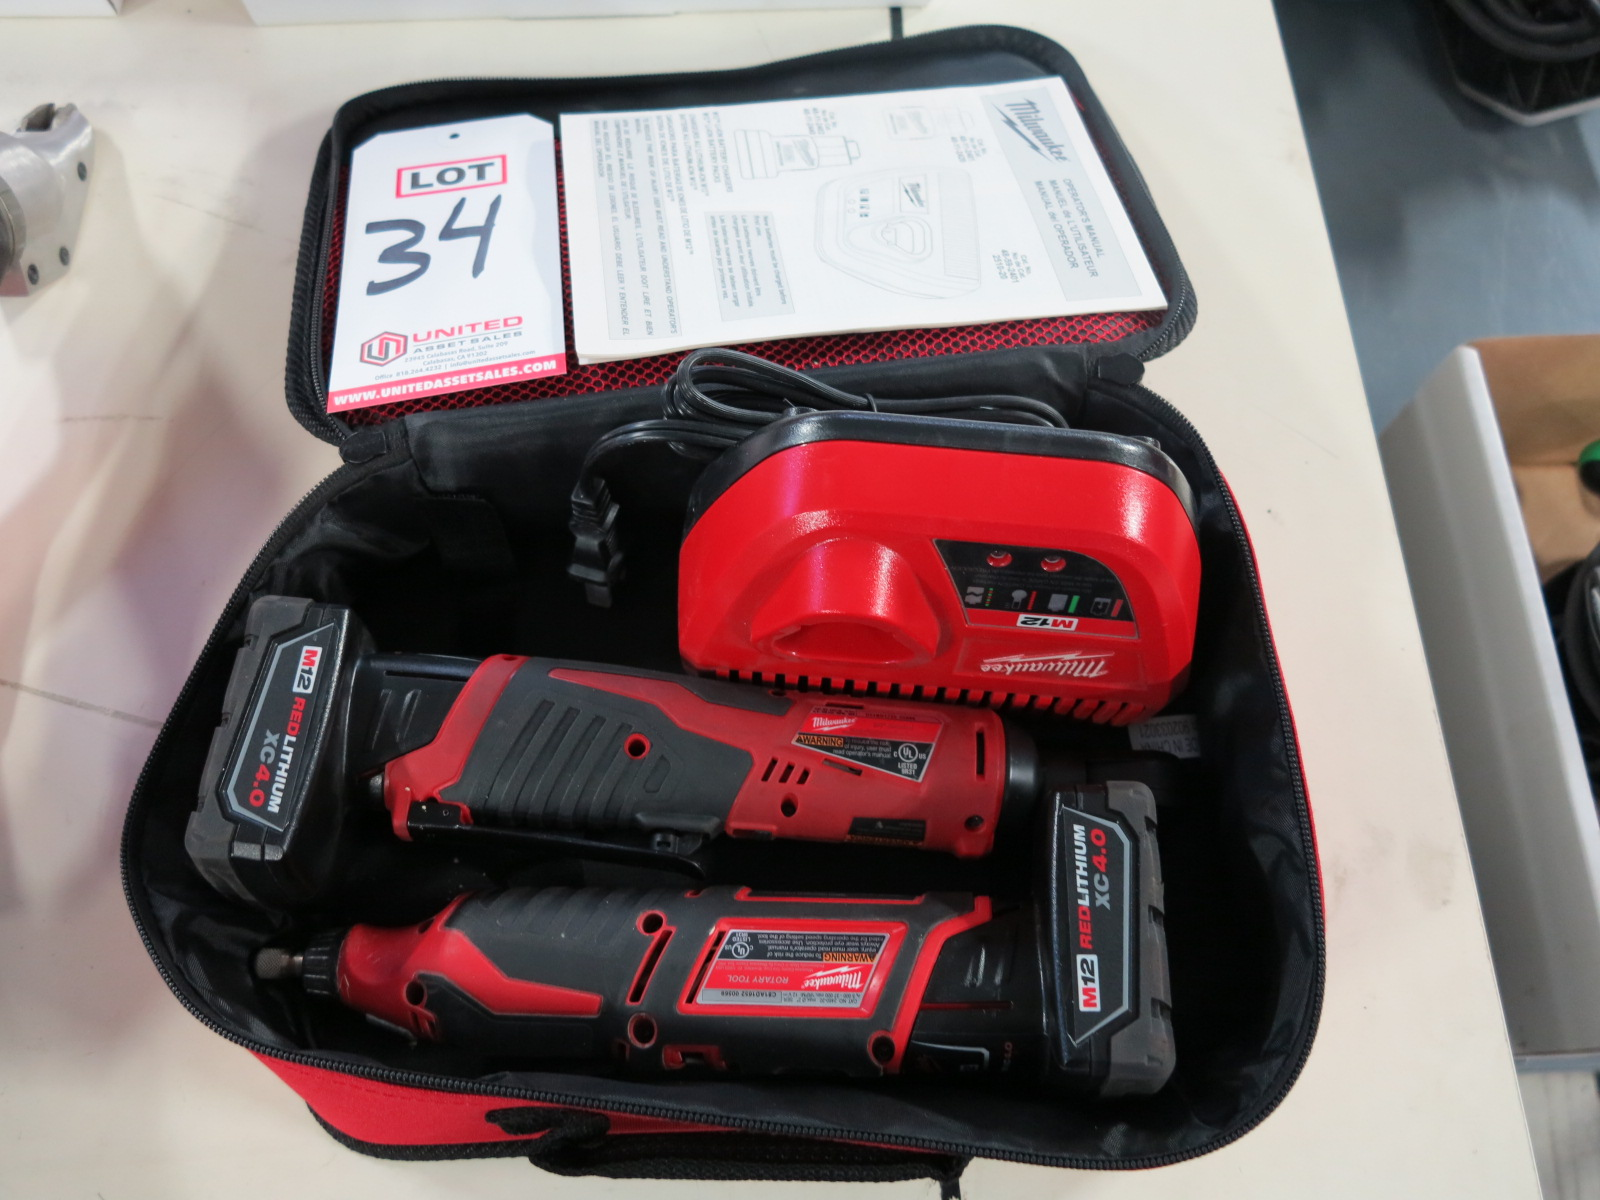 """Lot 34 - LOT - MILWAUKEE M12 ROTARY TOOL AND 3/8"""" RATCHET, BOTH W/ M12 XC 4.0 BATTERIES"""